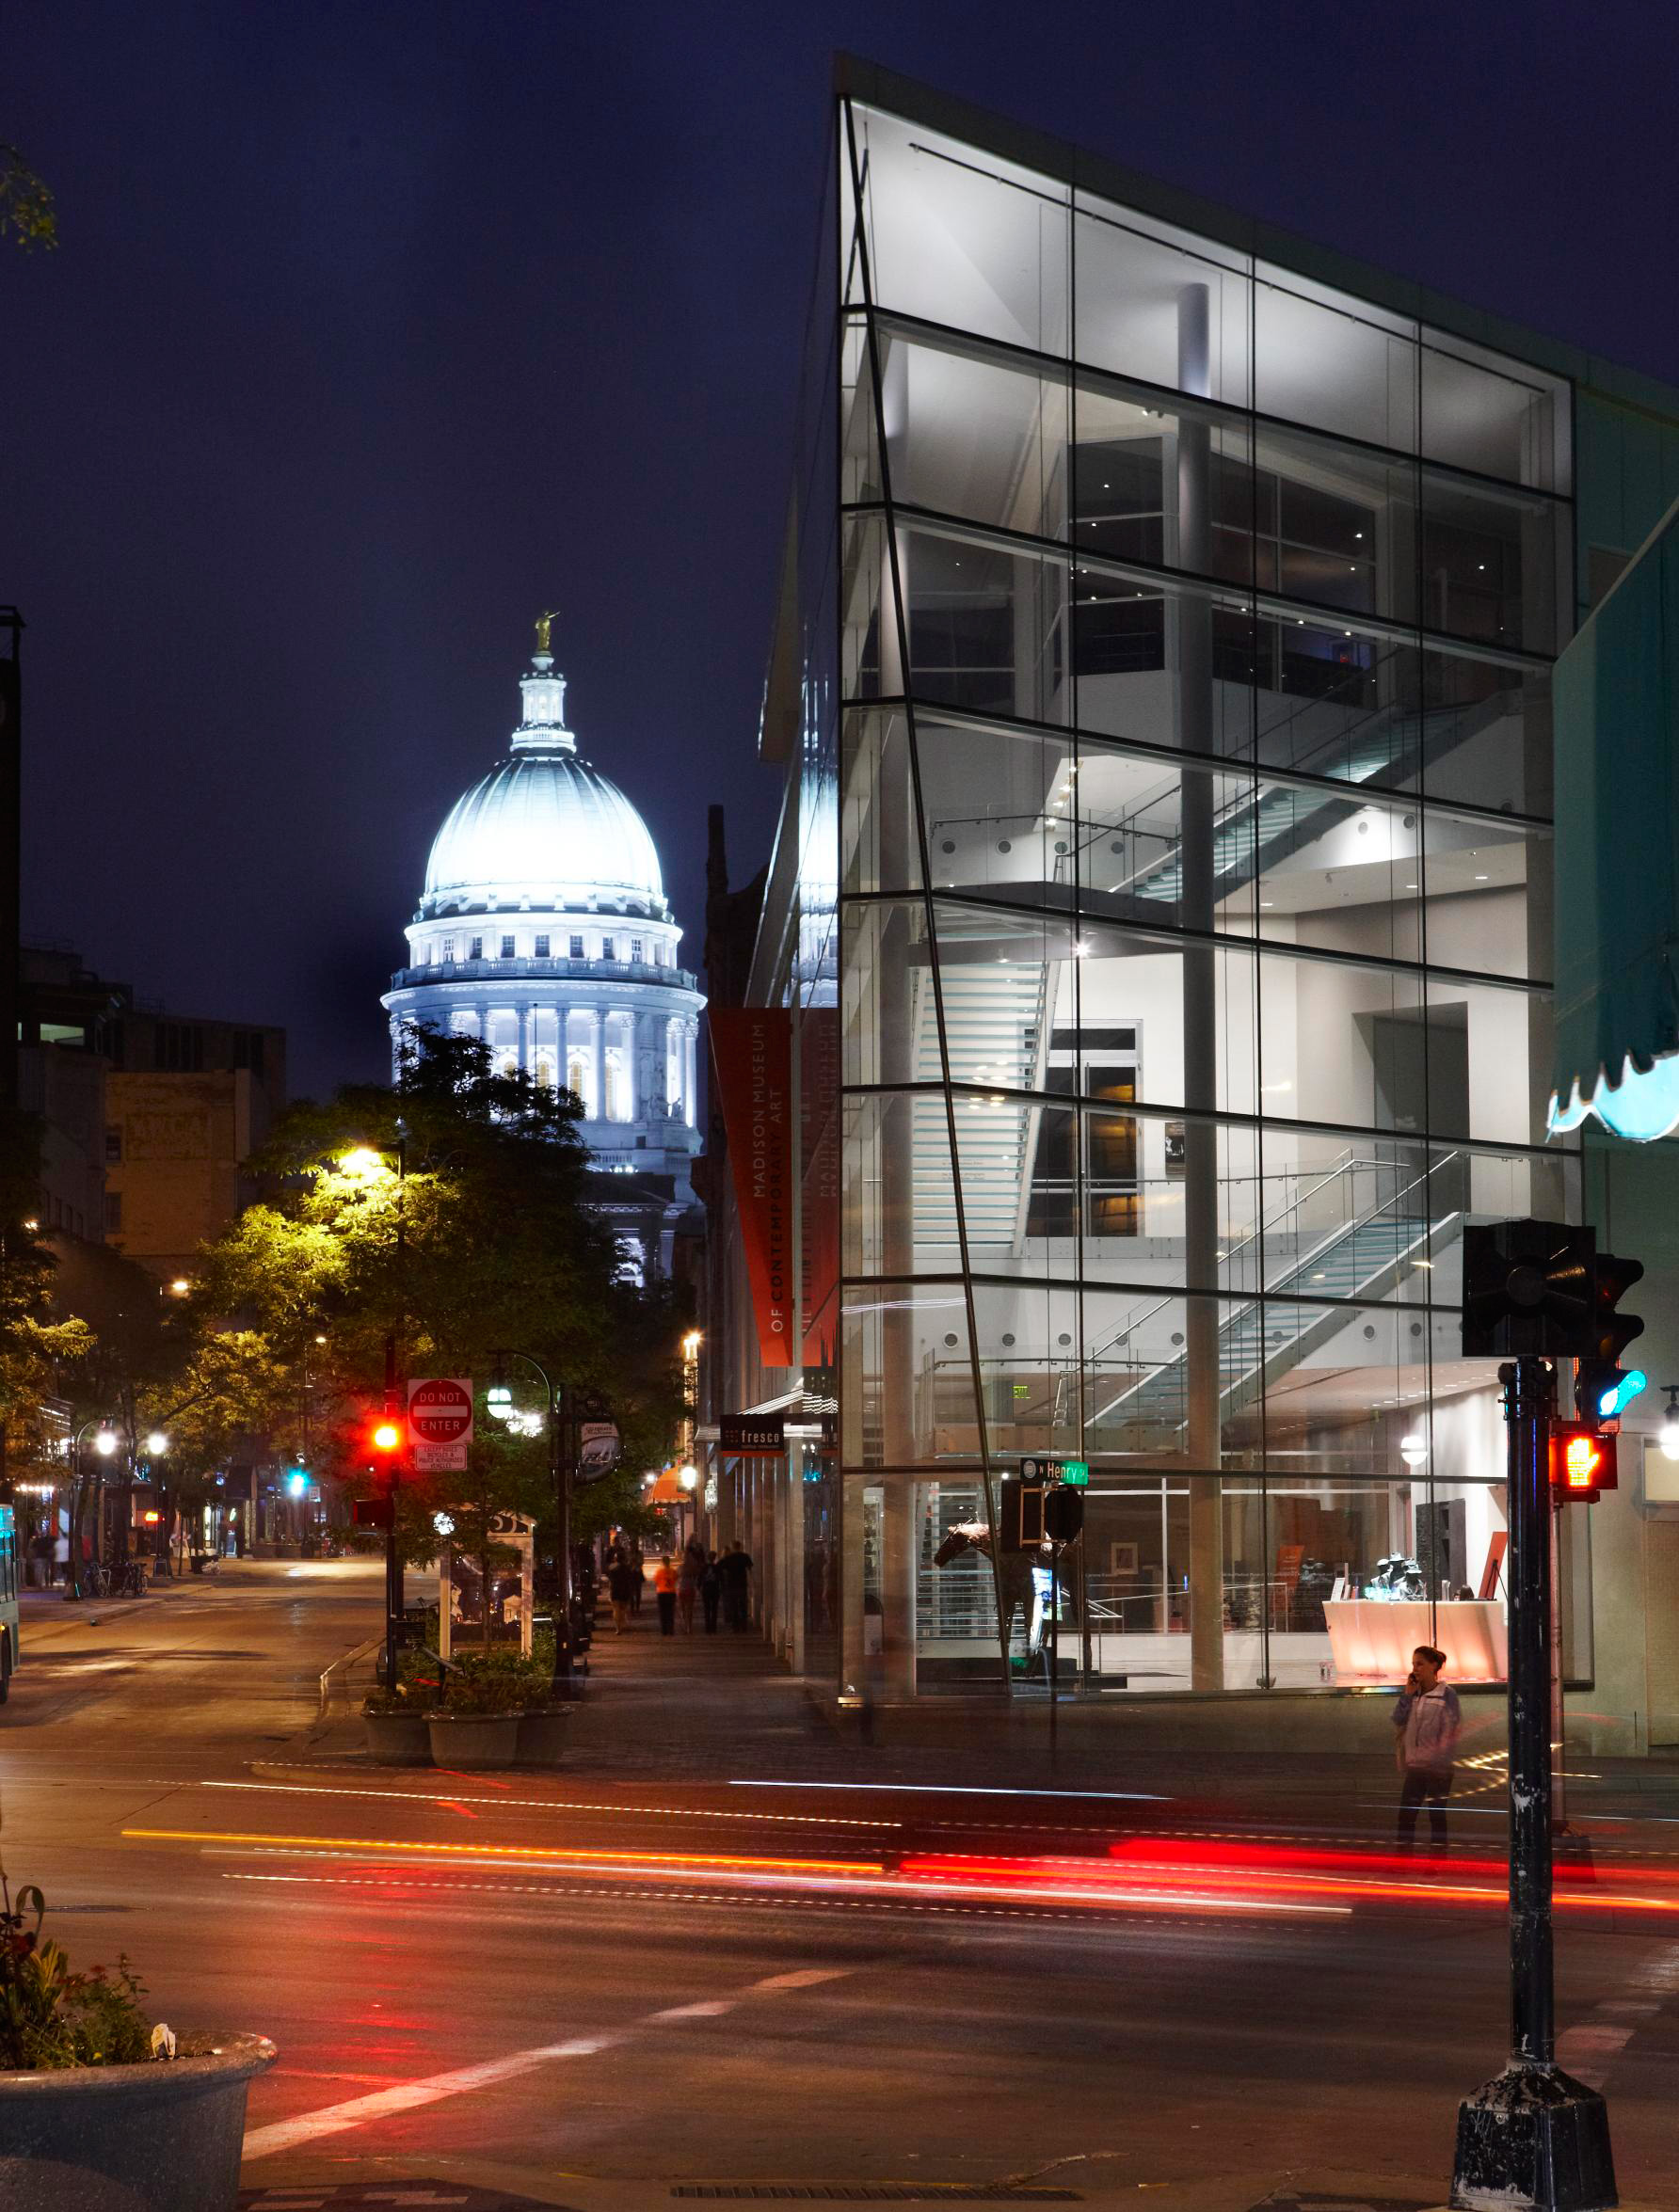 Madison, Wisconsin: 147 miles northwest of Chicago